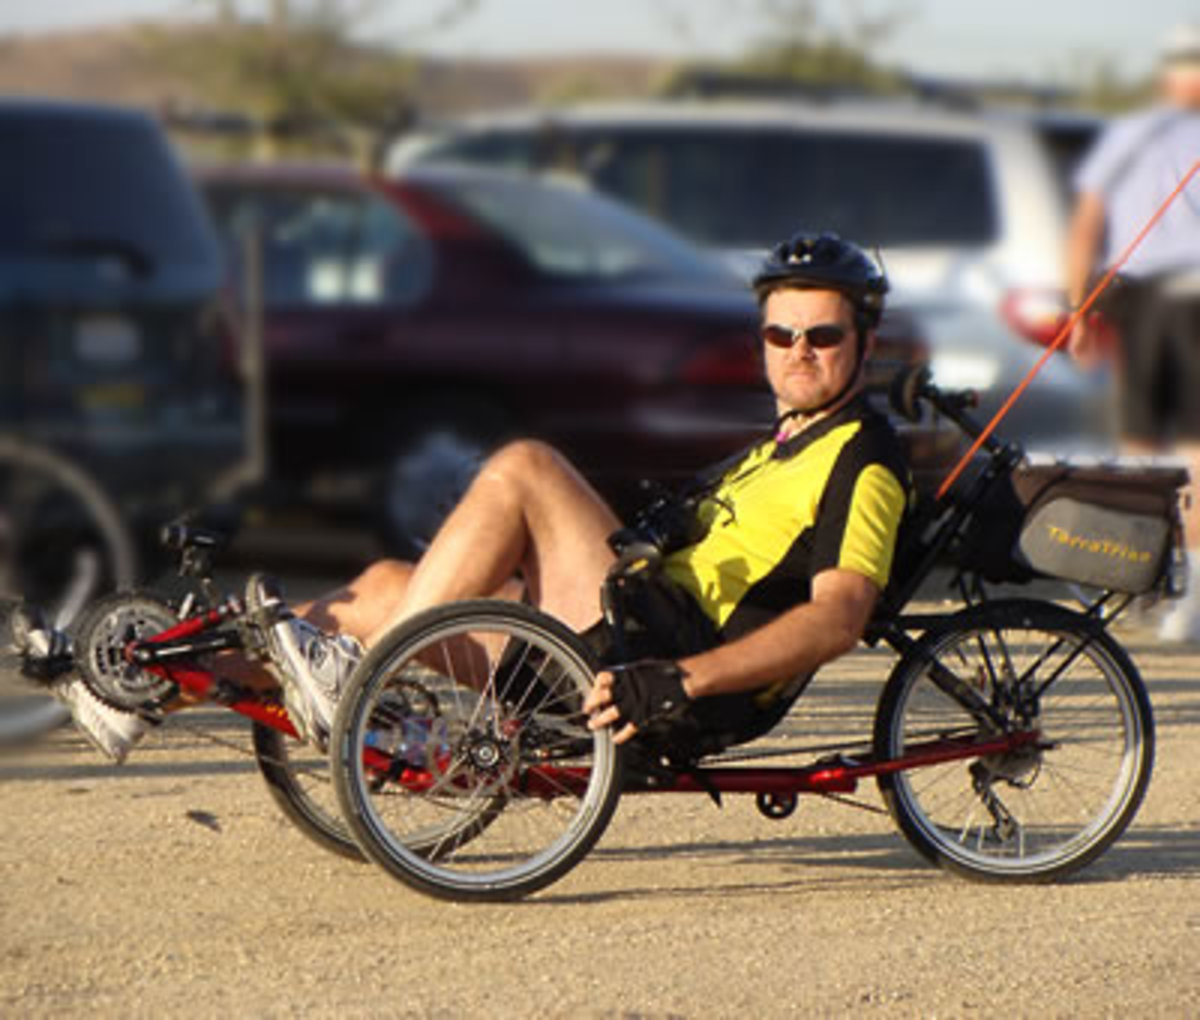 Recumbent Trike - My Midlife Crisis Car